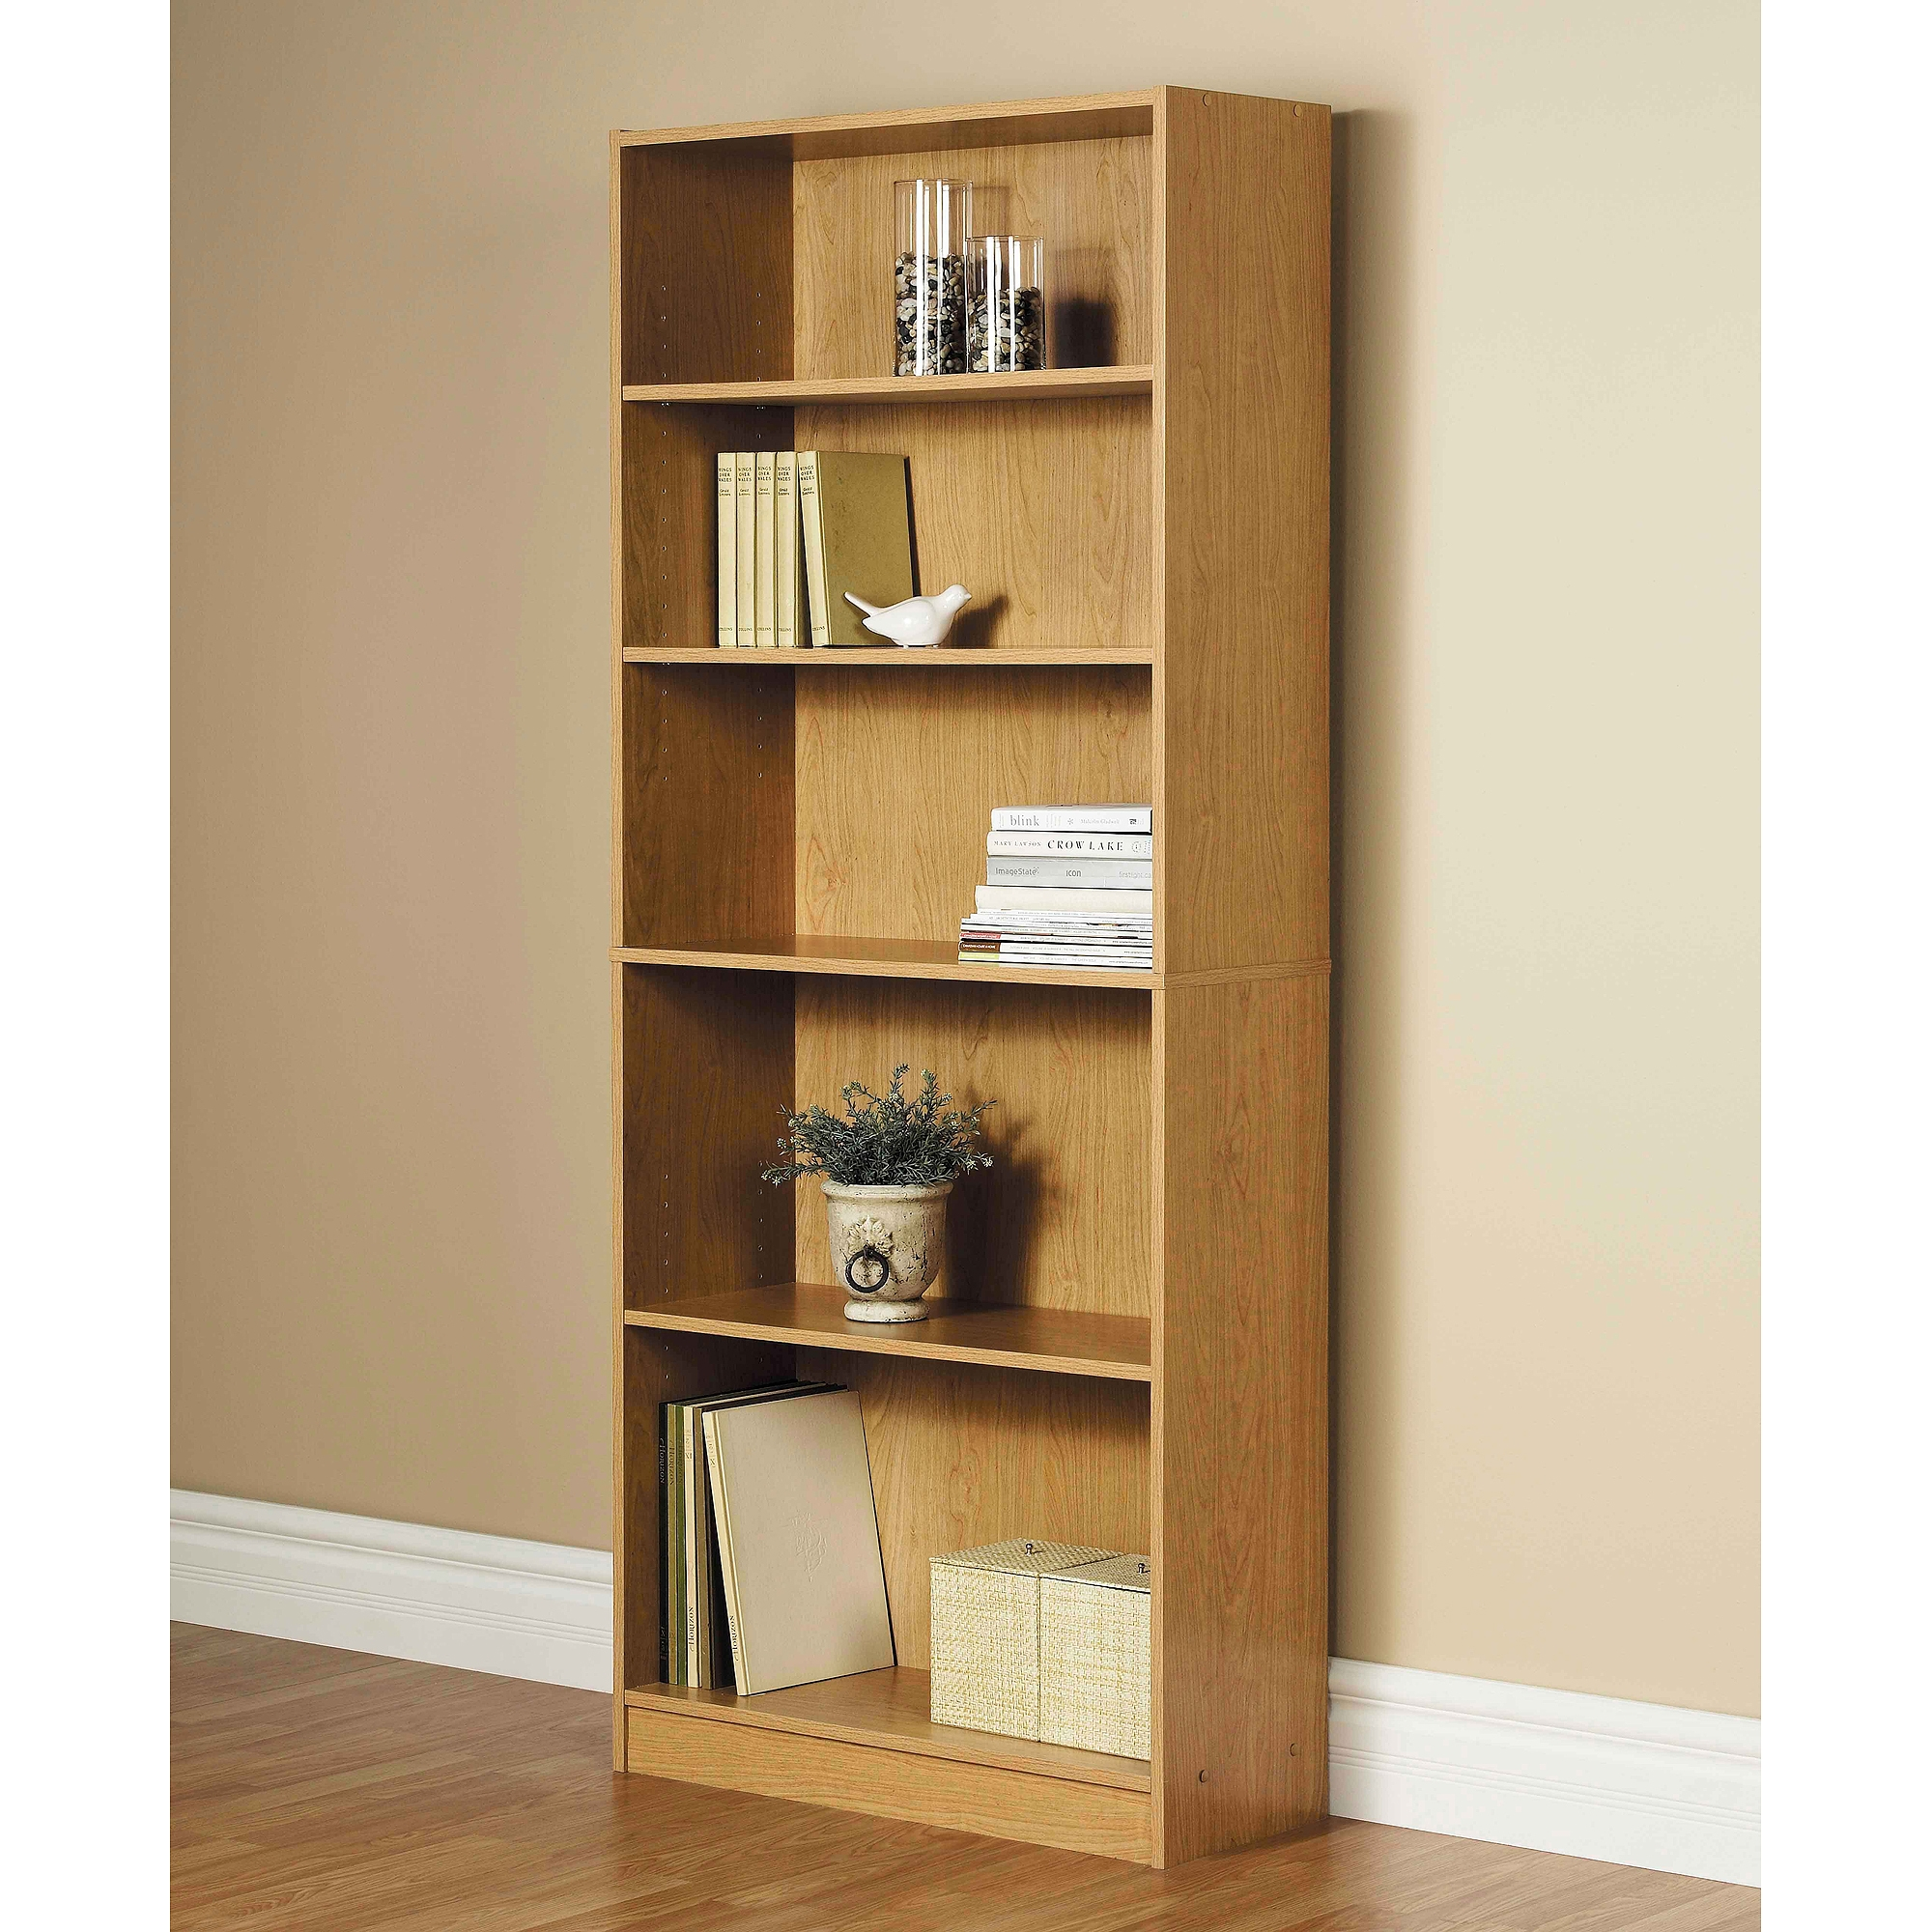 Solid Wood Bookcases Throughout Wooden Bookcases (View 5 of 15)